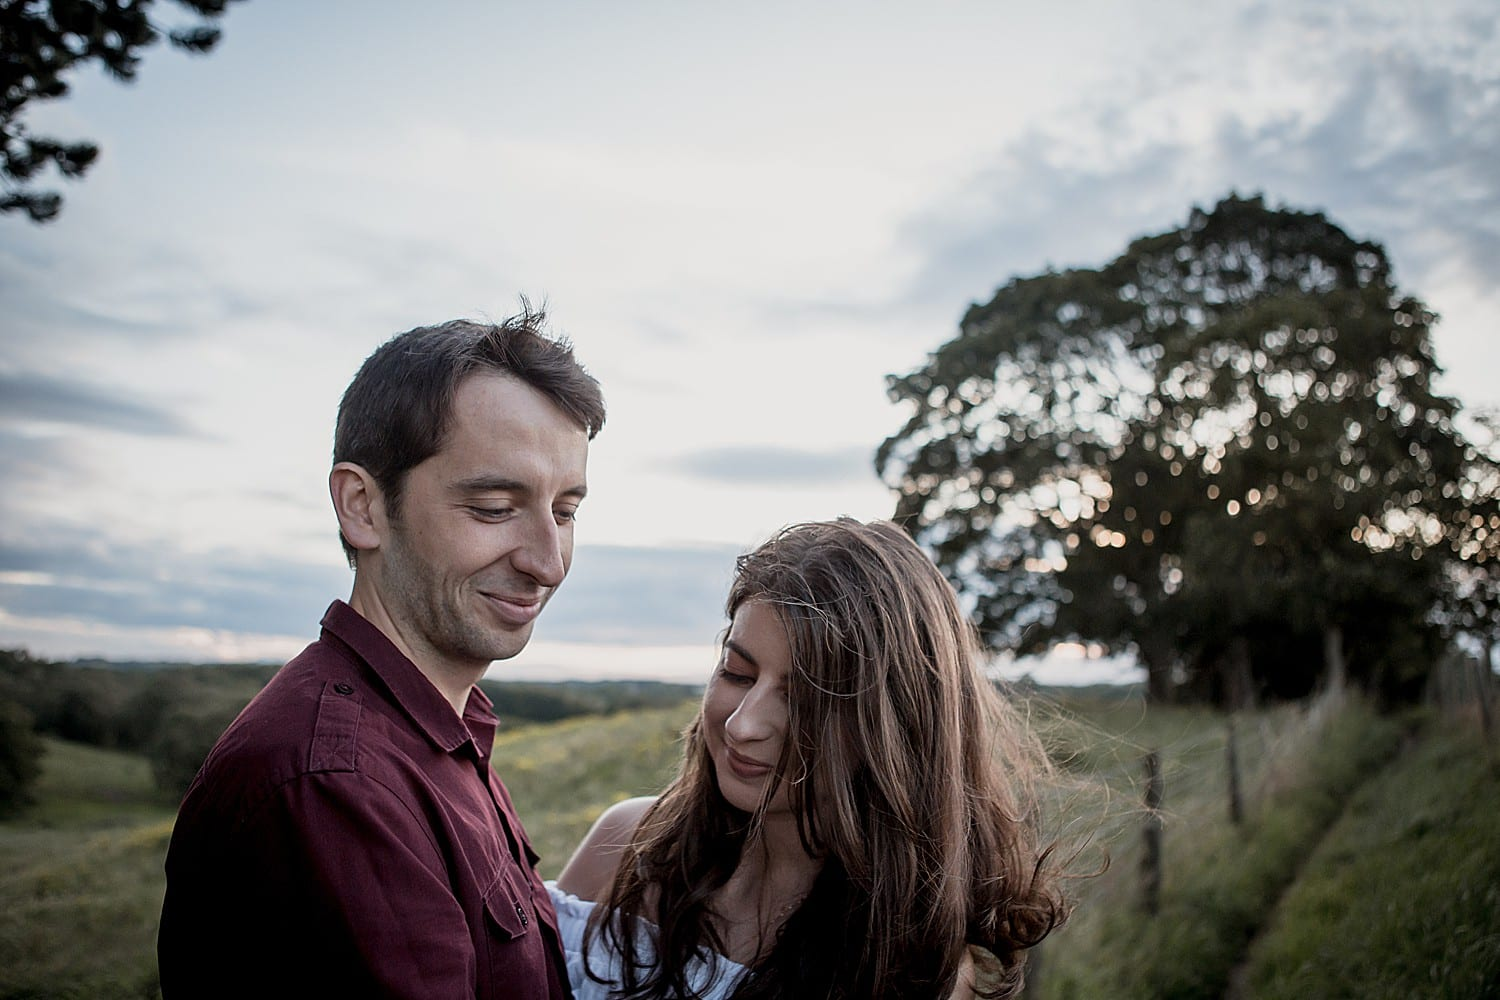 Engagement photography in Cheshire